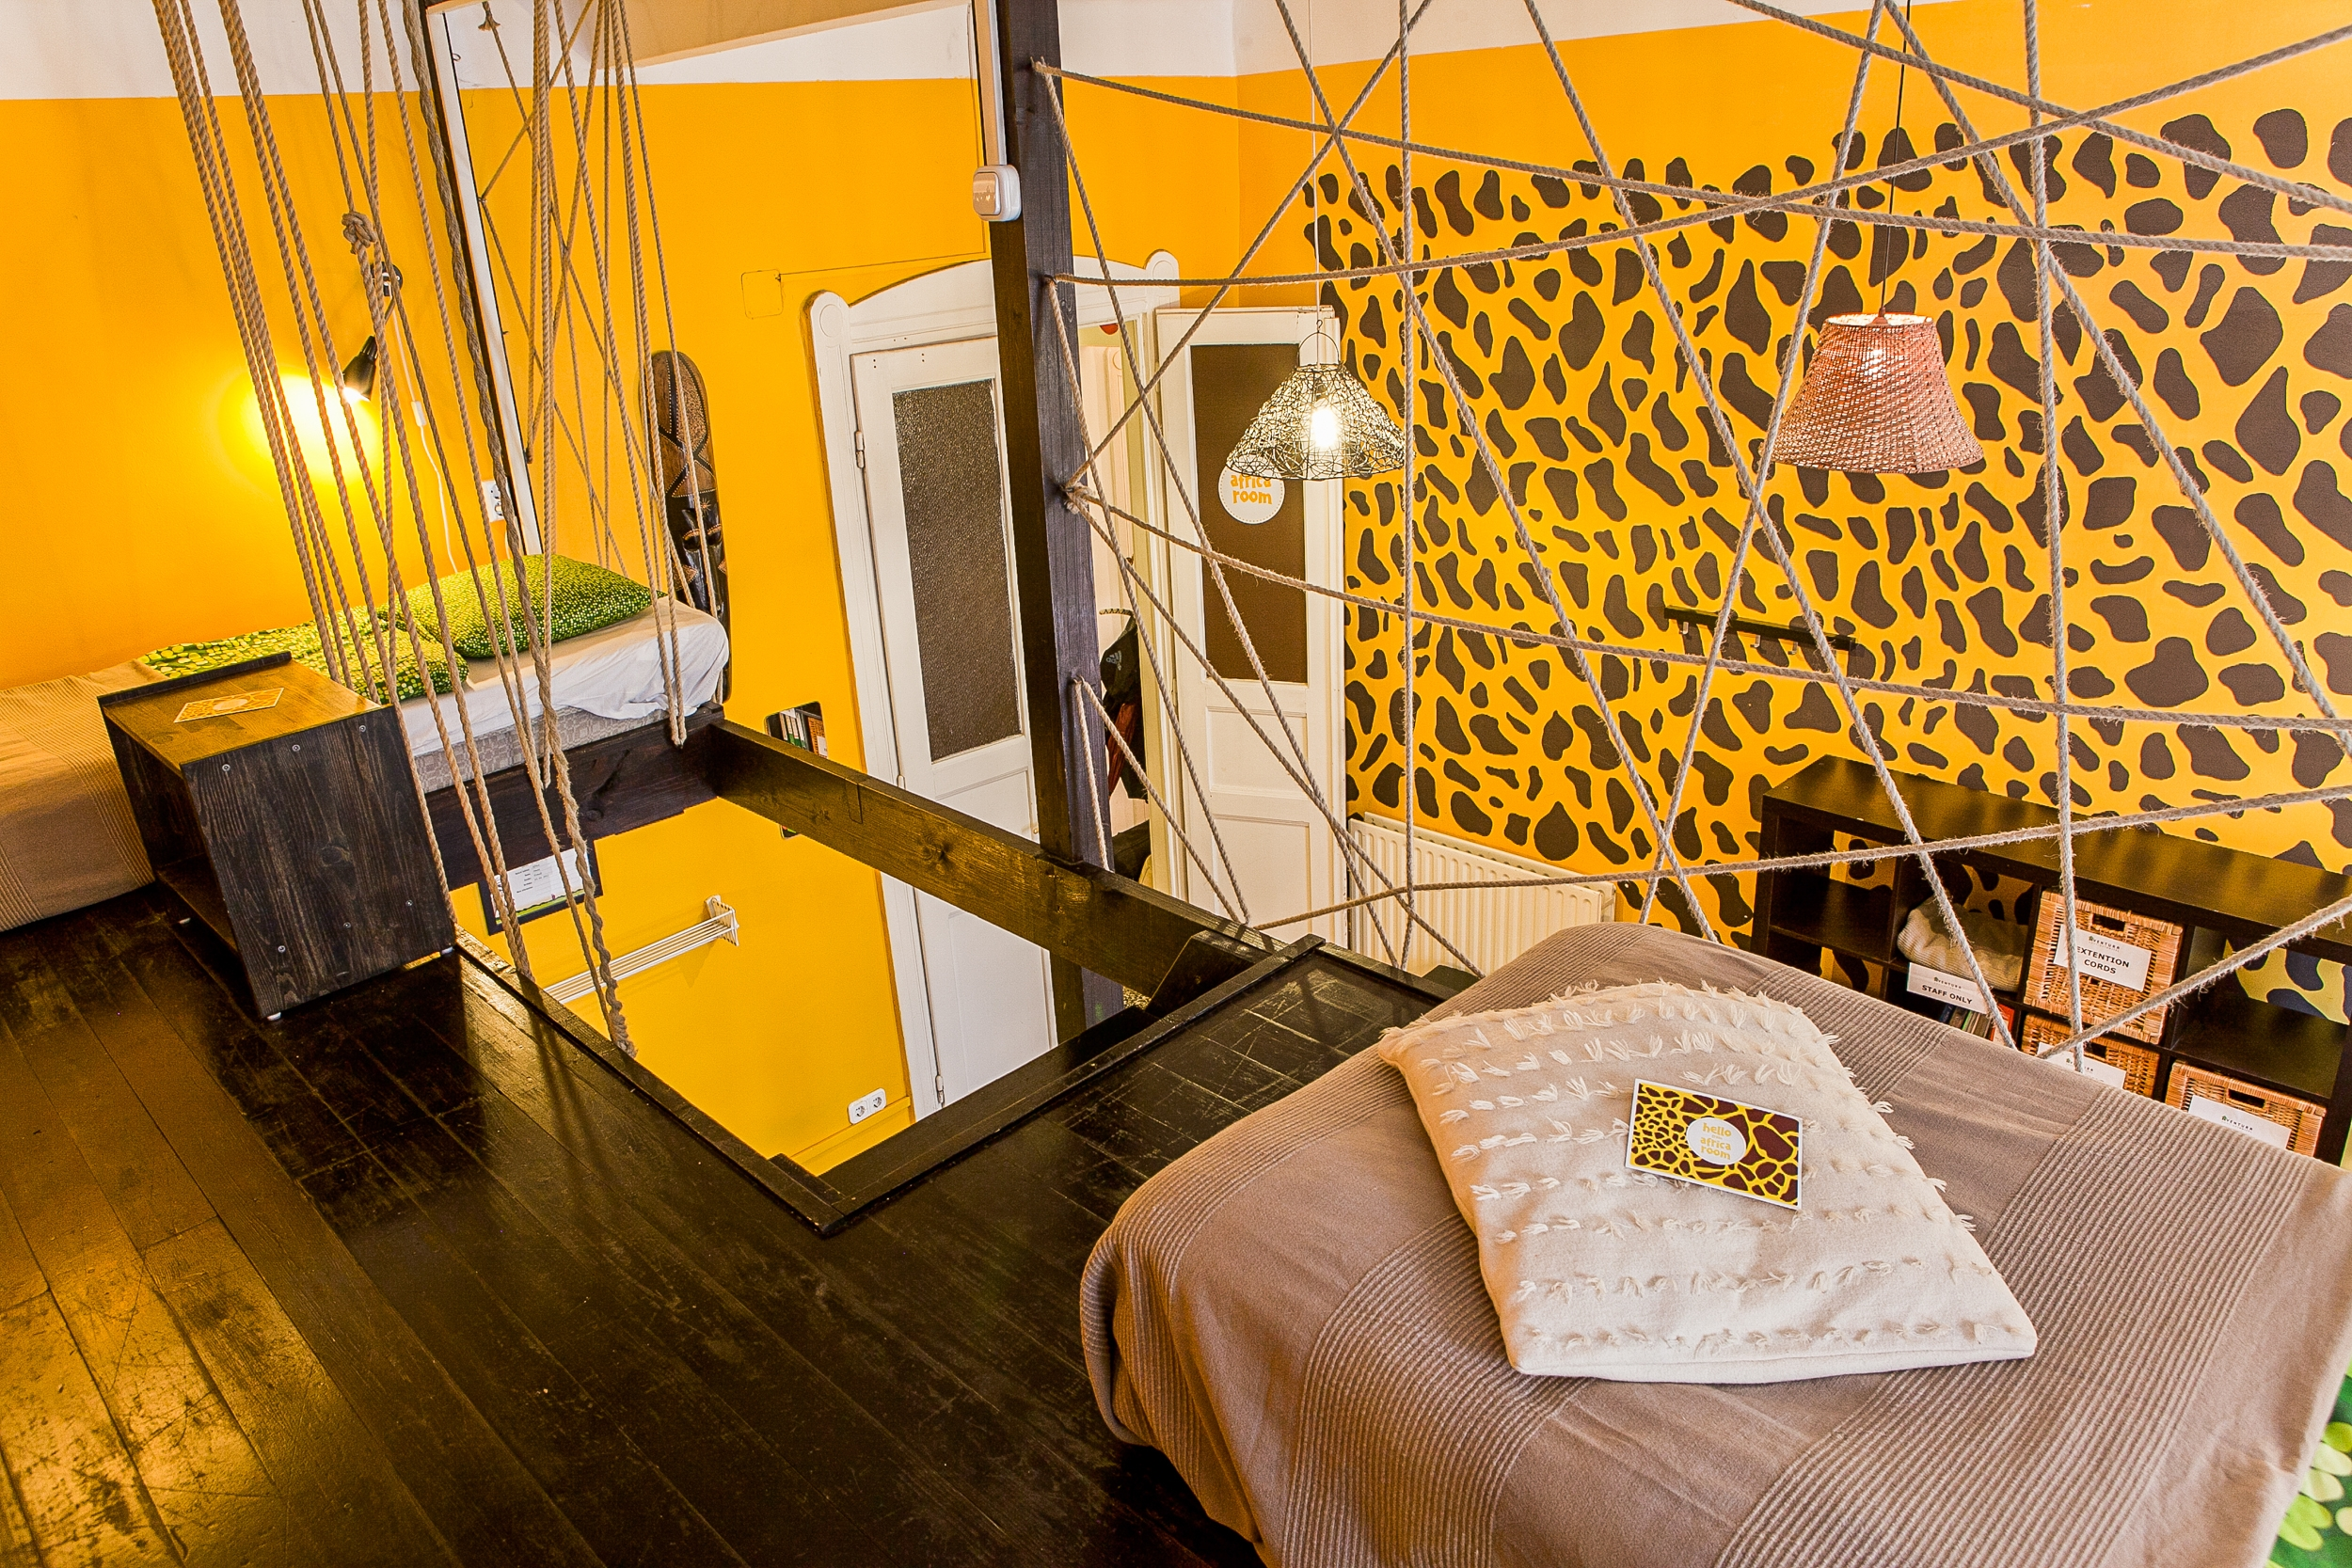 aventura boutique hostel africa room